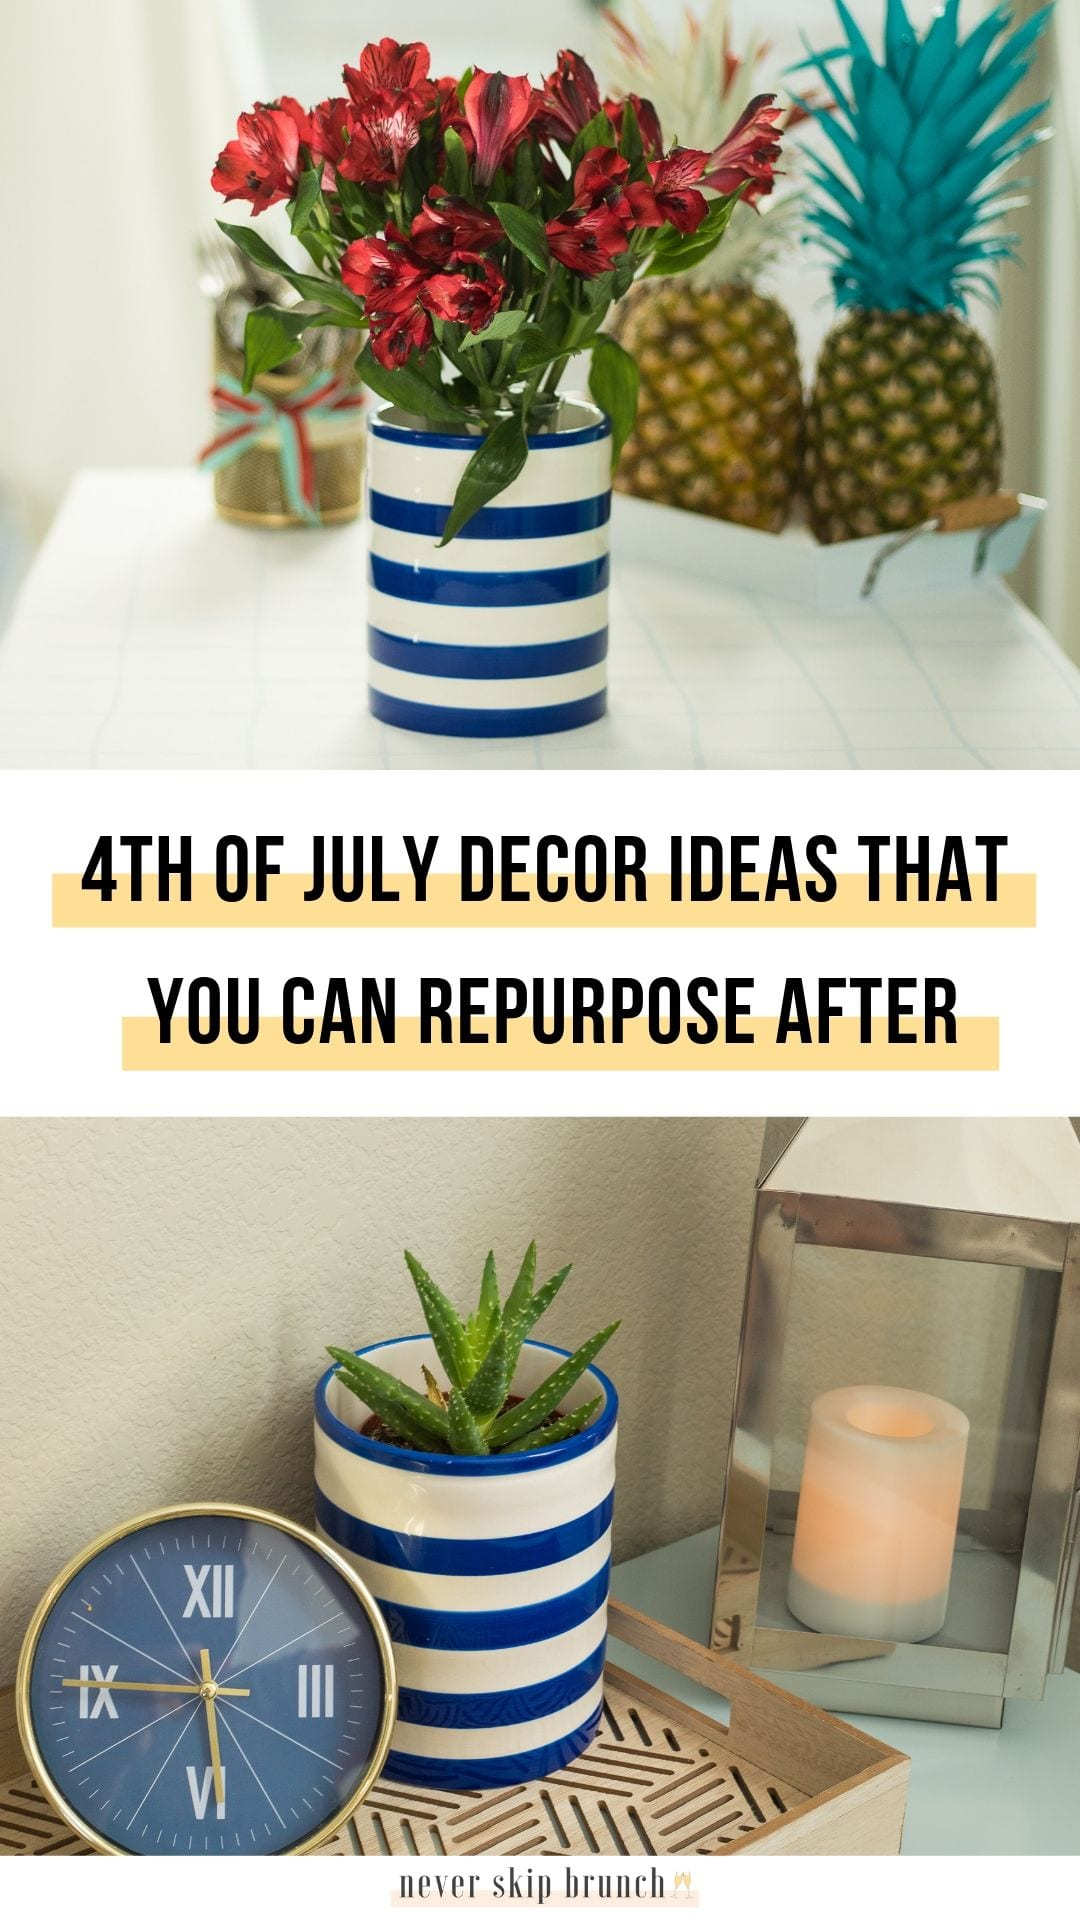 WOW! 4th of july decor ideas that you can reuse as everyday decor after. #neverskipbrunch neverskipbrunch.com #decor #4thofjuly